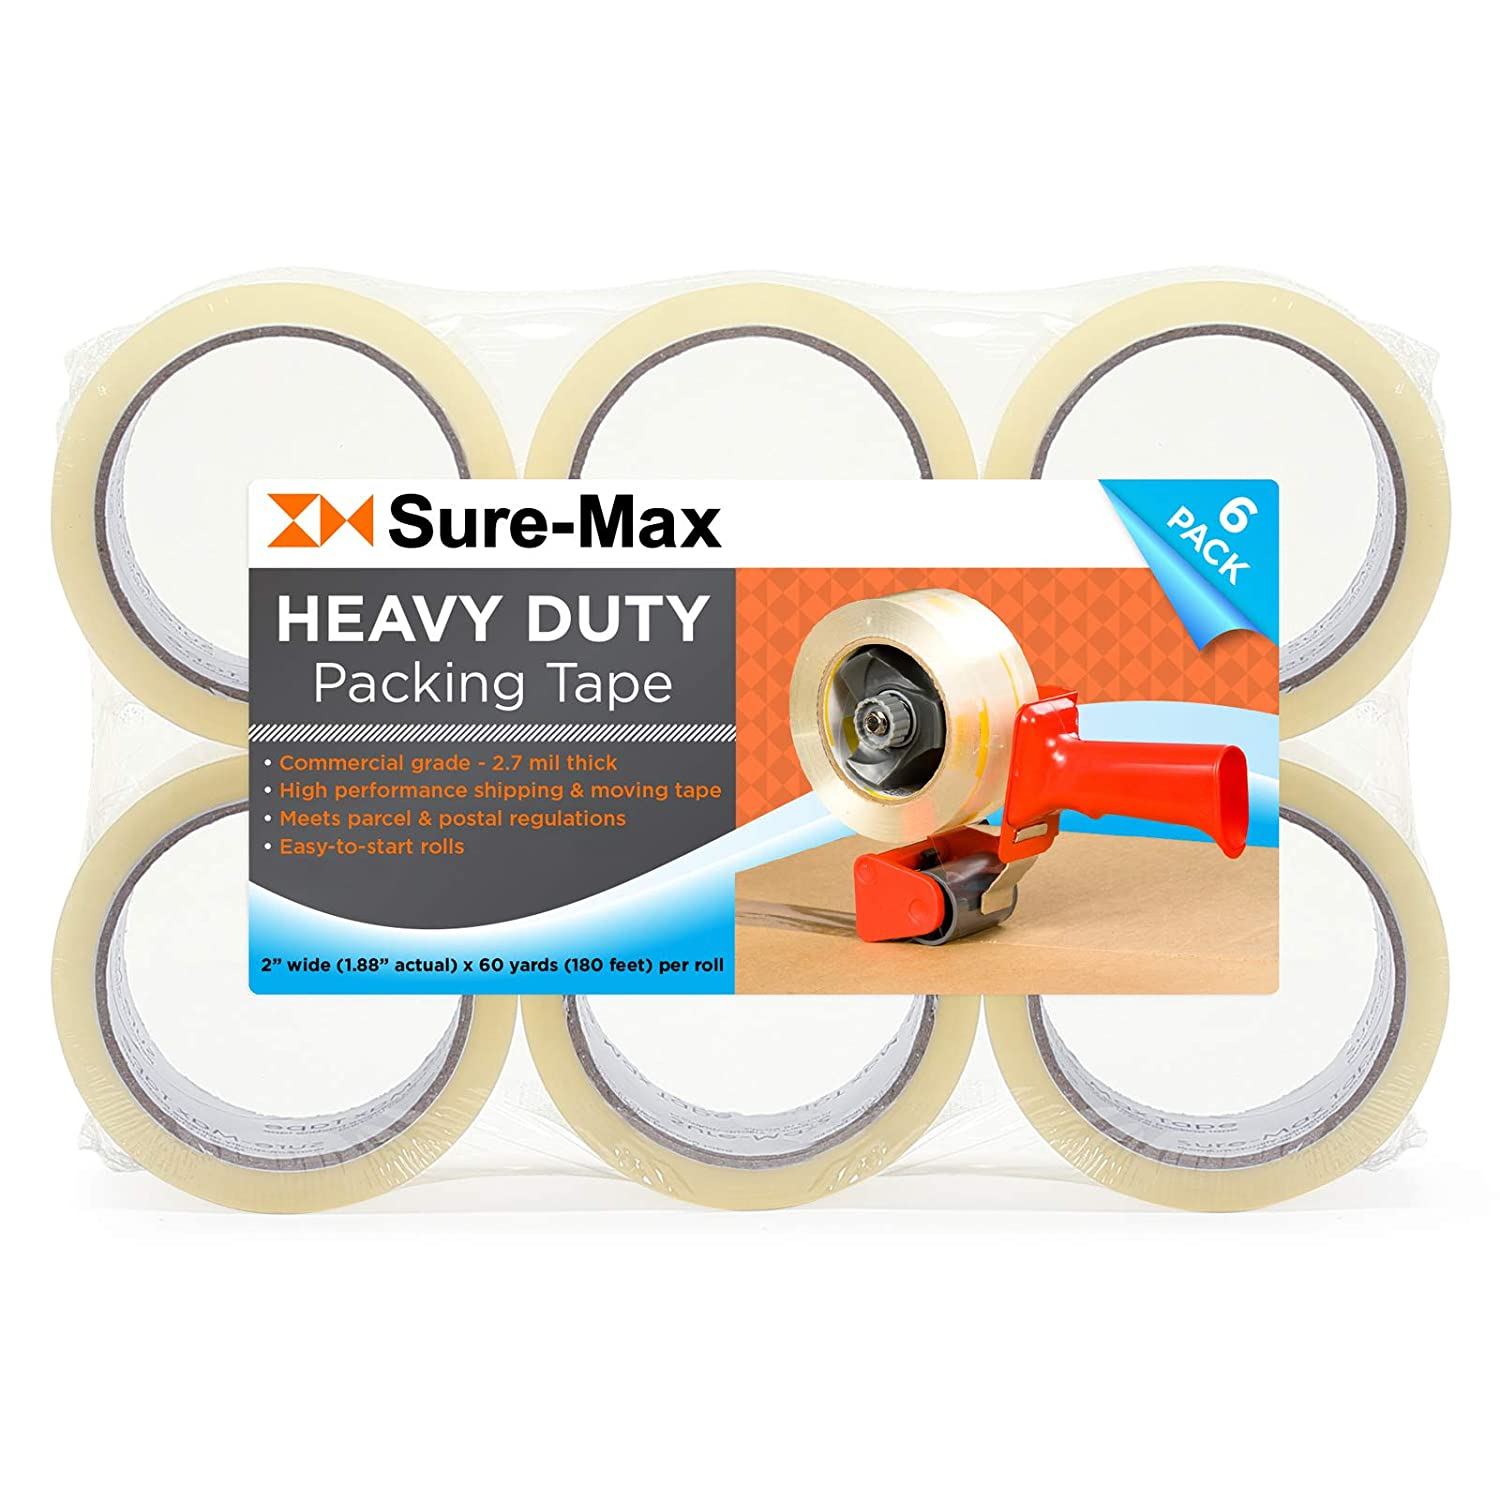 2.7mil Clear Sure-Max 6 Rolls Heavy-Duty Shipping /& Packing Tape 2 x 60 yard//180 Each - Moving /& Adhesive Carton Sealing